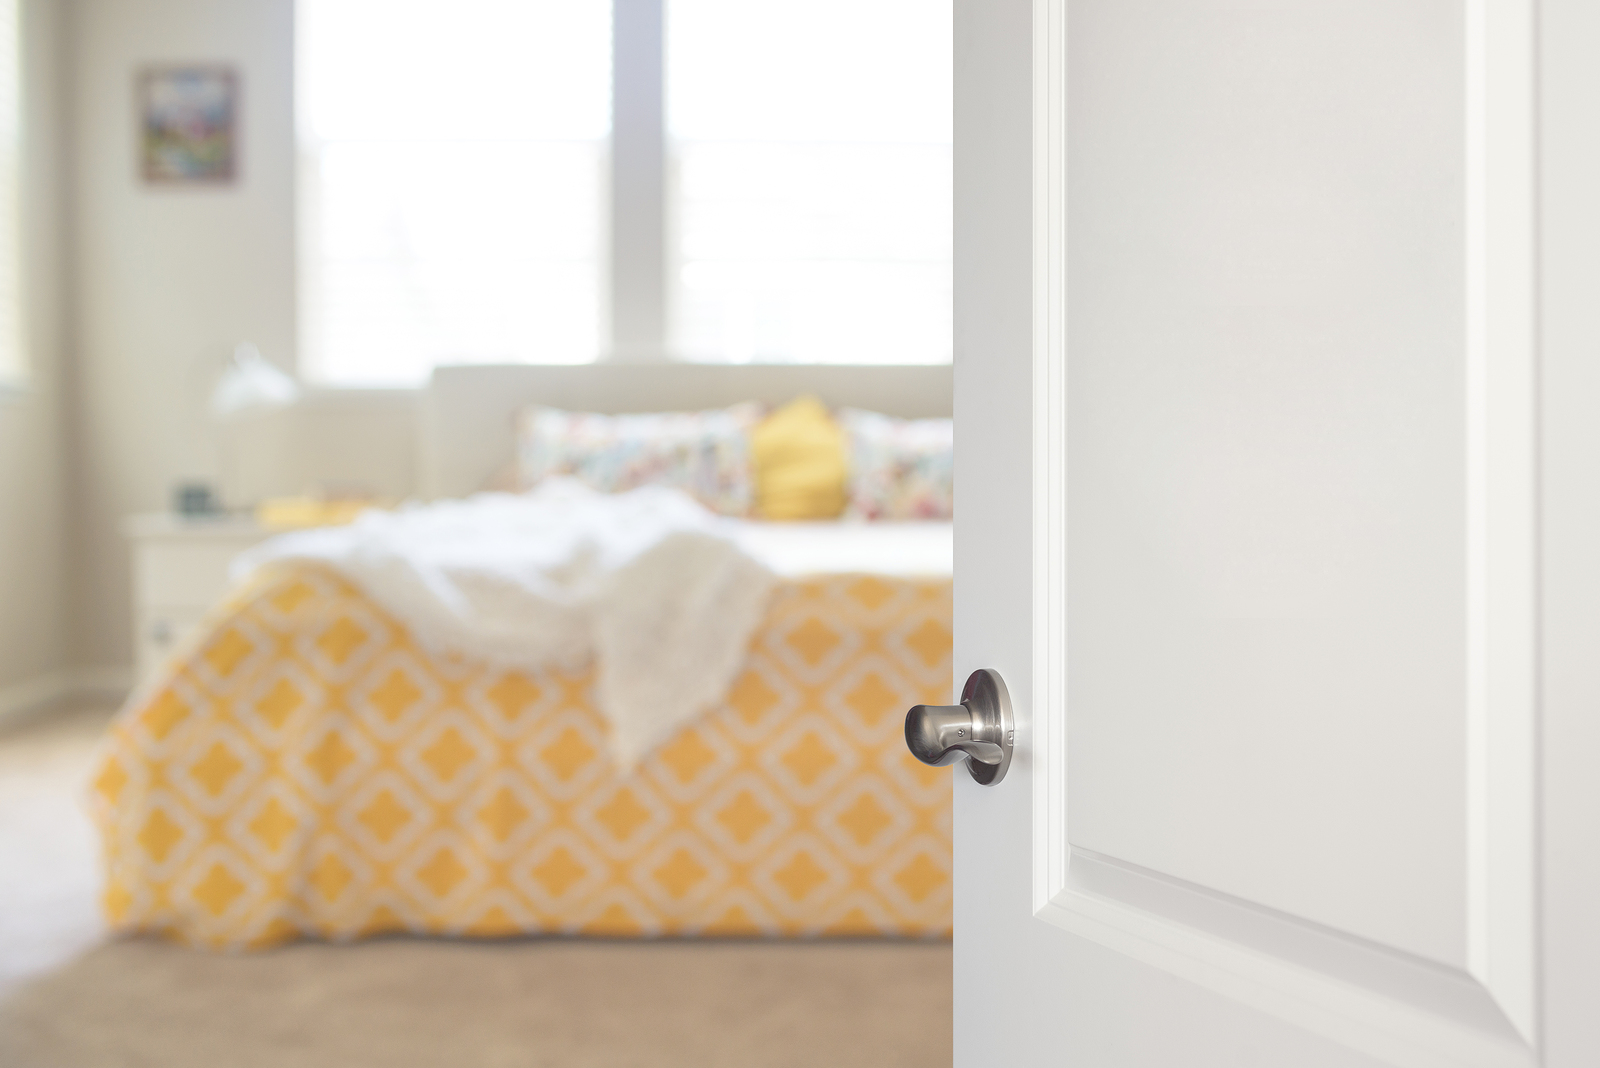 The Empty Bedroom 4 Issues Of Trust For Parents Of Children Who